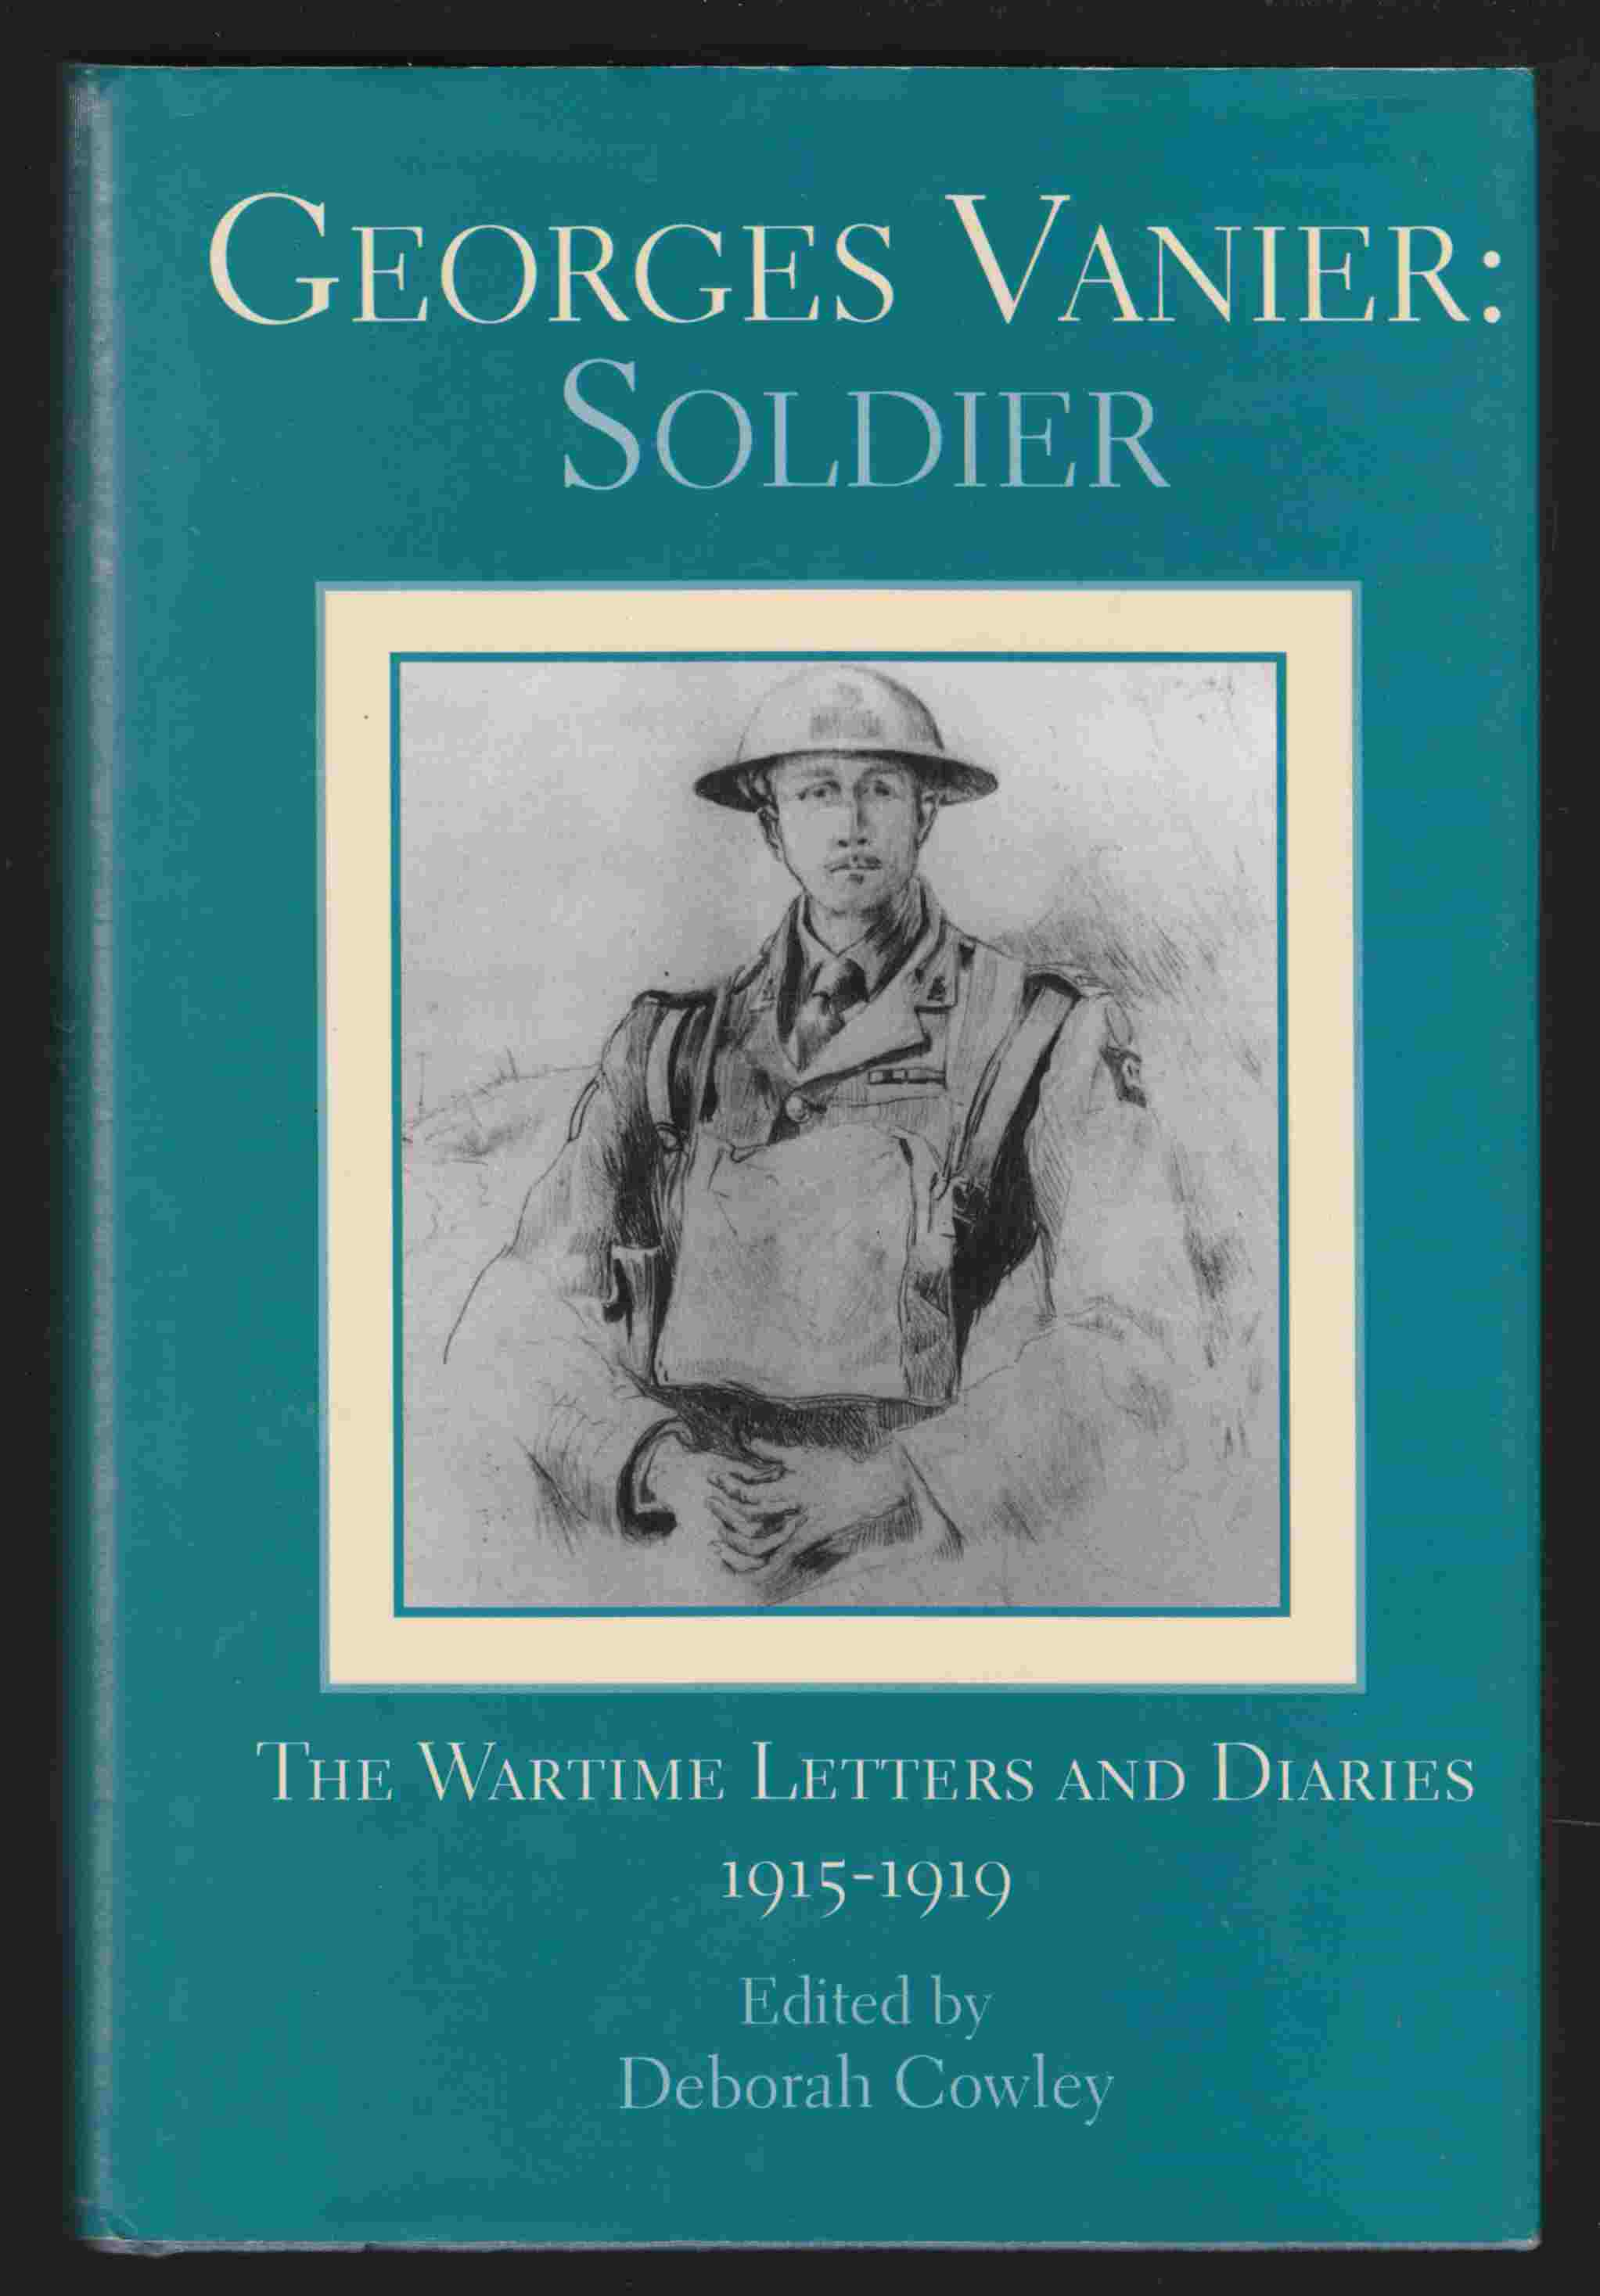 Image for Georges Vanier: Soldier The Wartime Letters and Diaries 1915-1919